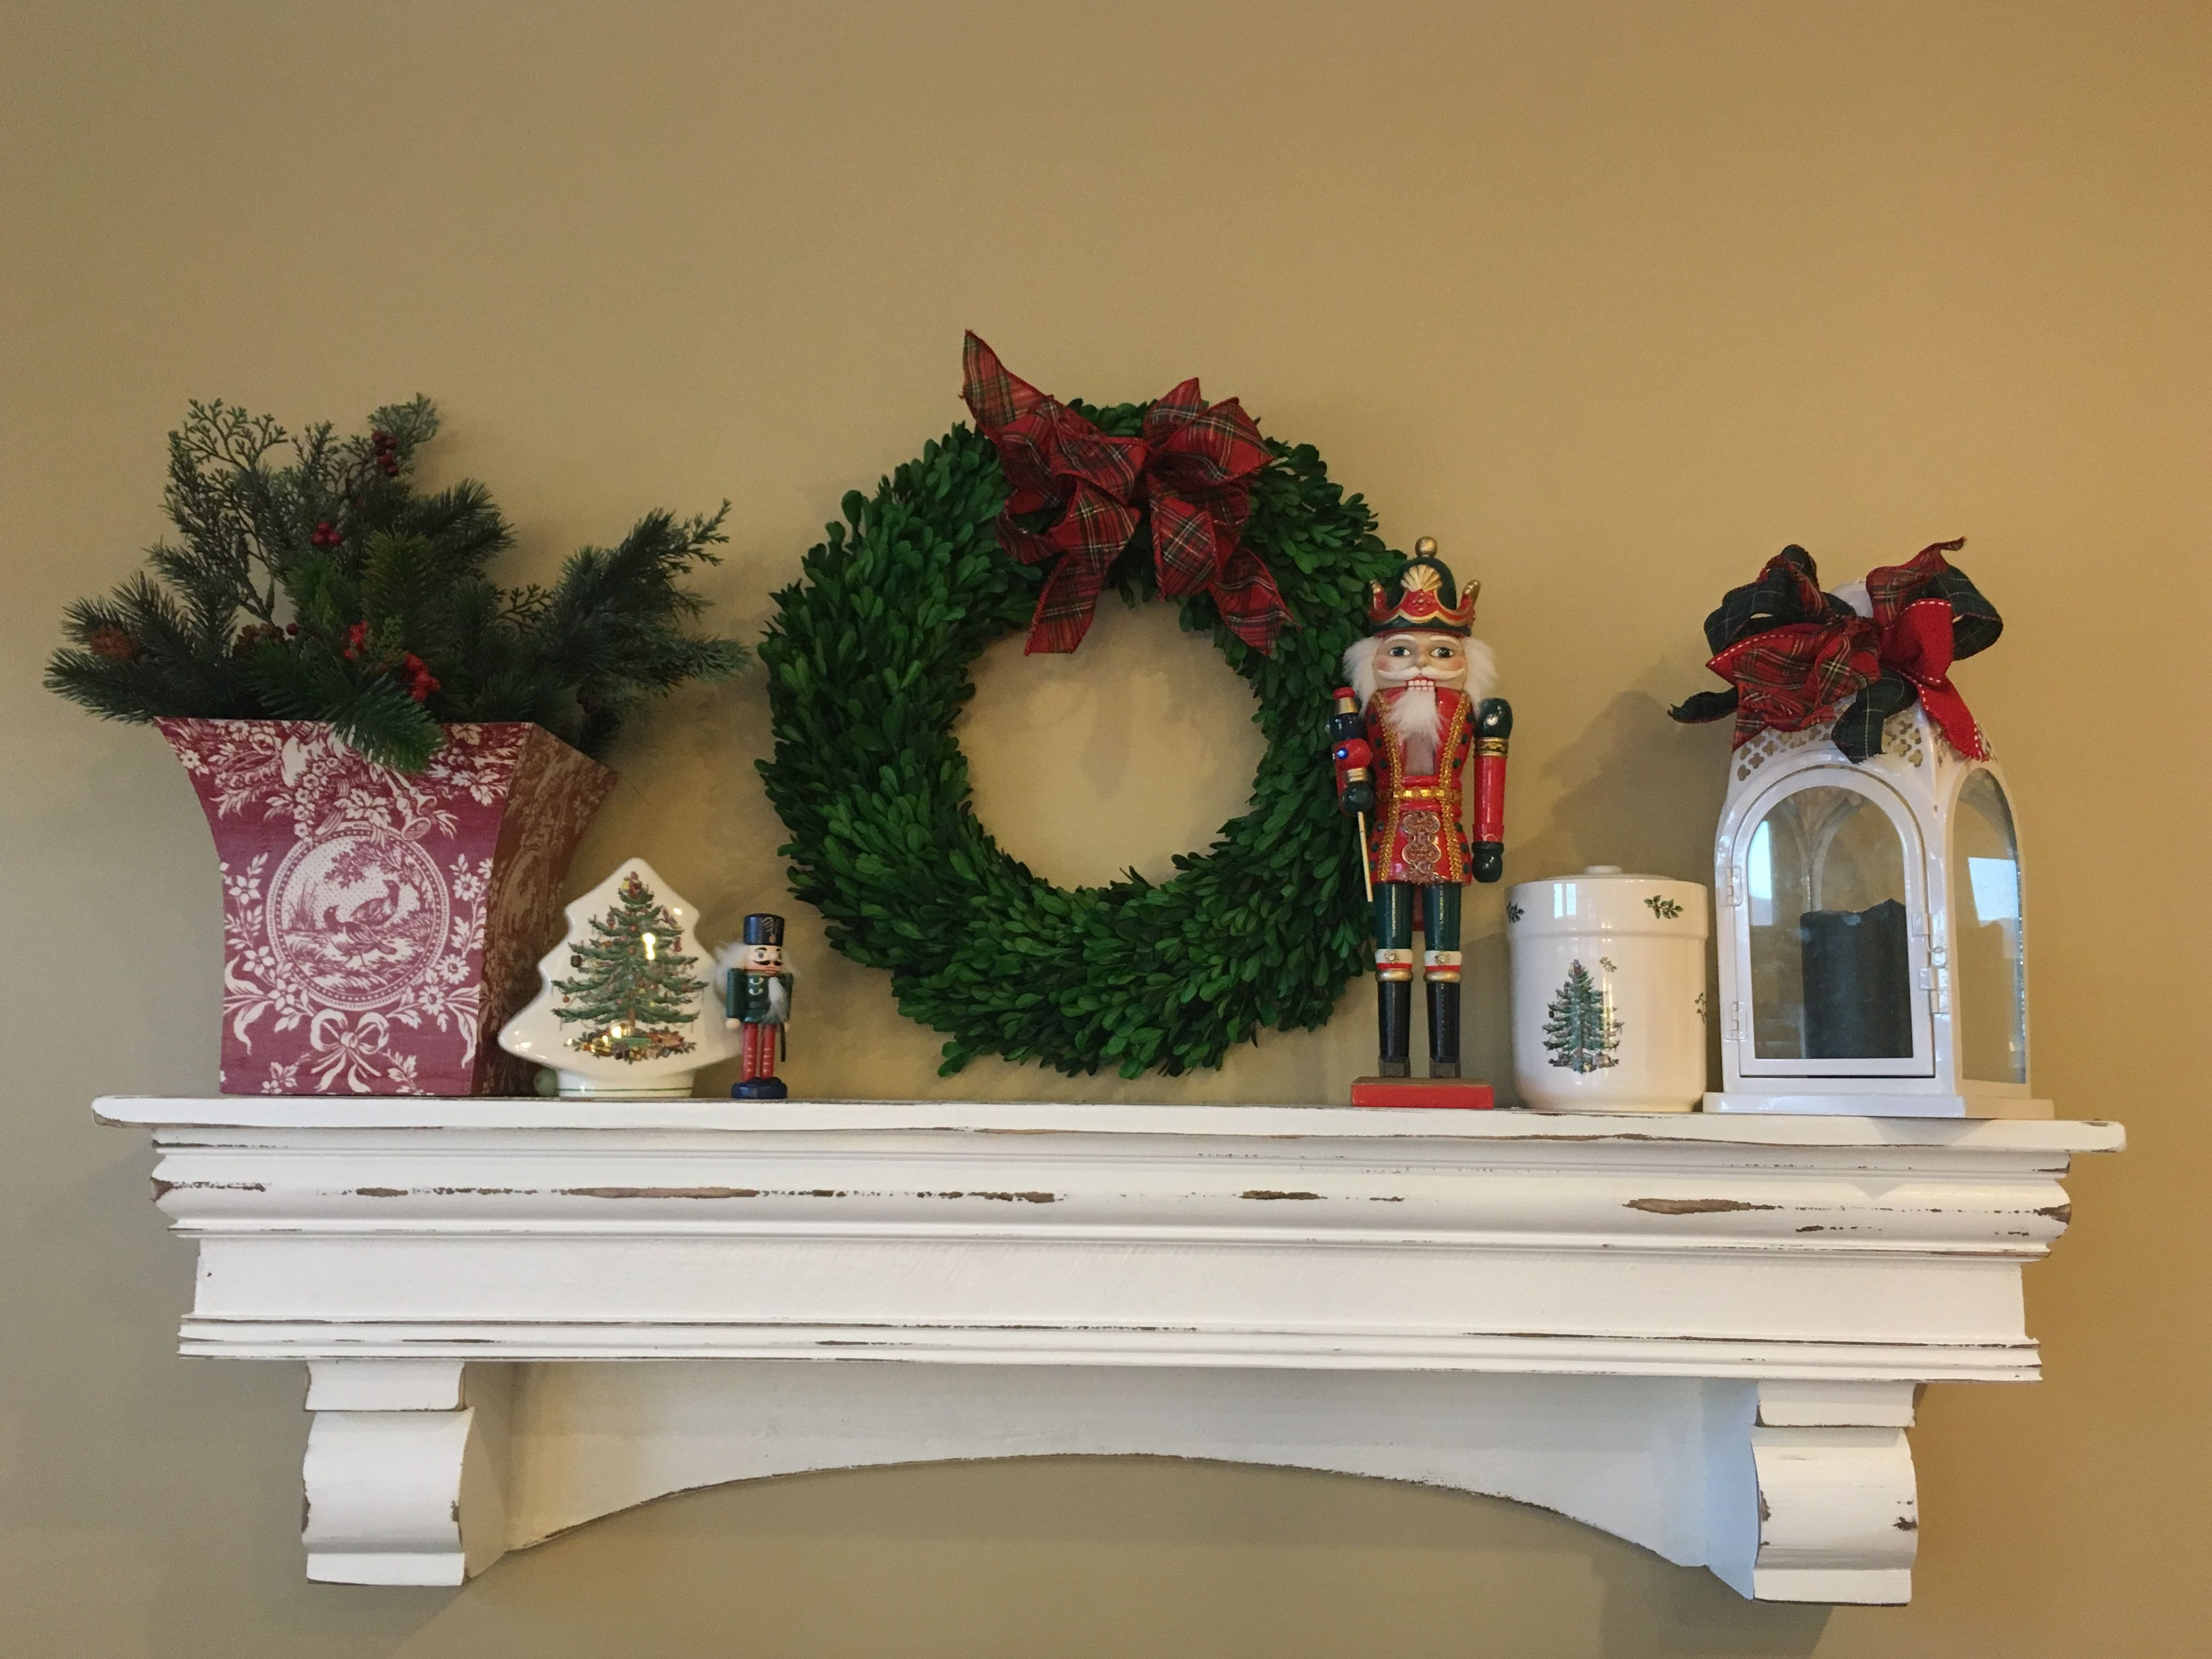 Boxwood Wreath With Festive Tartan Bow Red Toile Planter Filled Holiday Greens Nuter